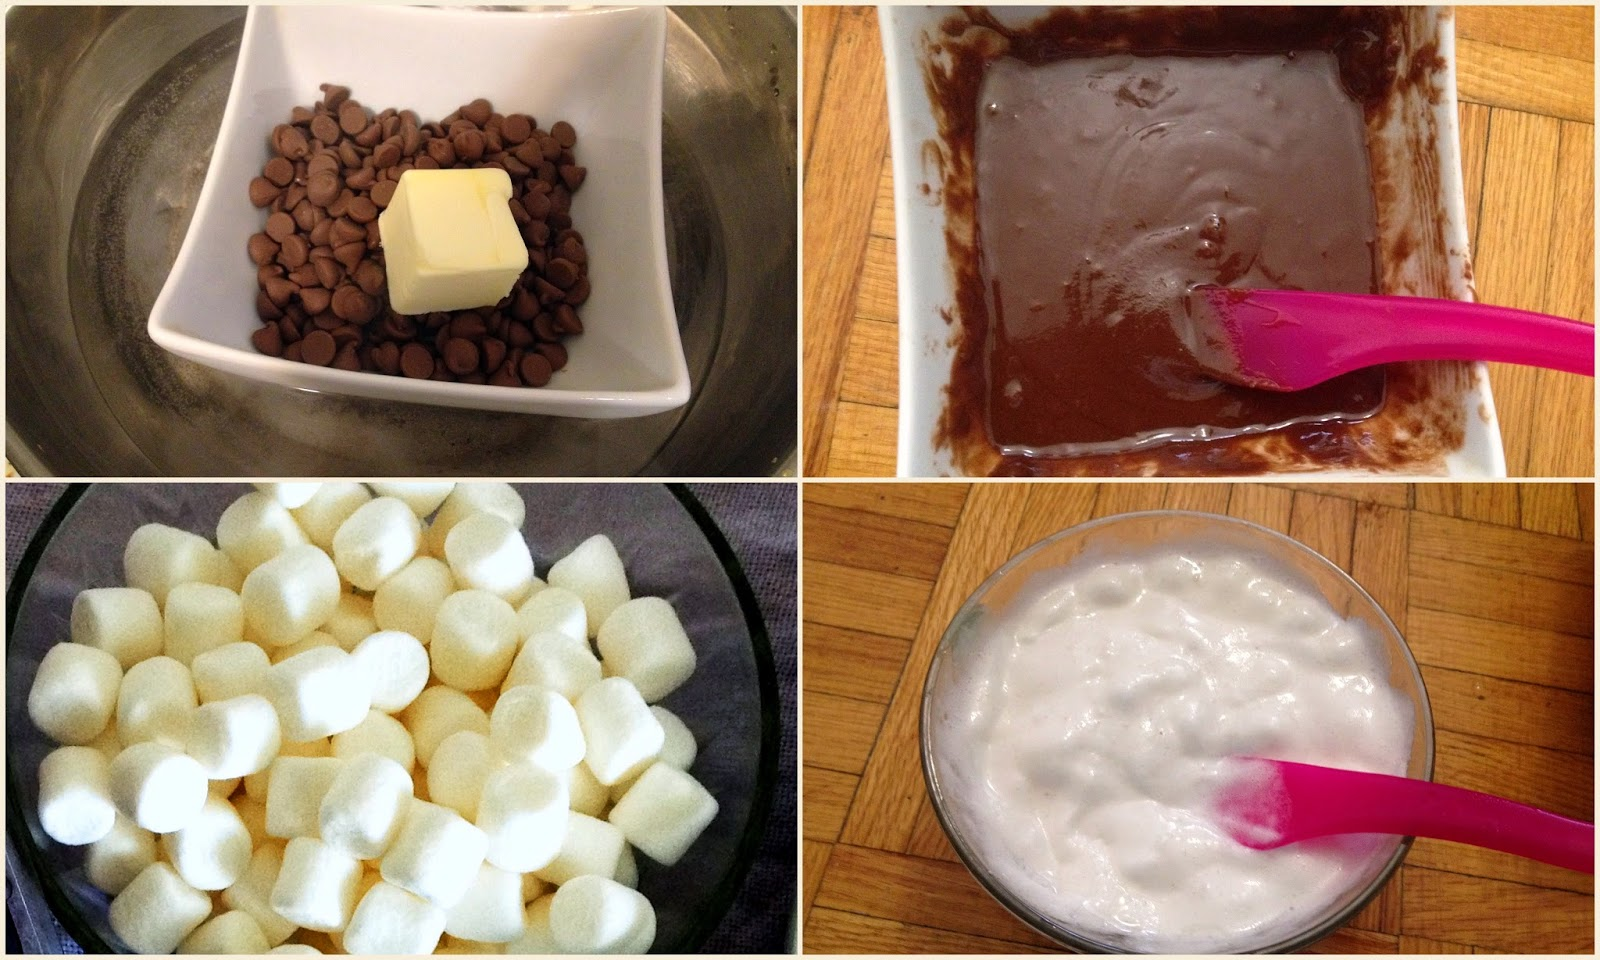 Chocolate and Marshmallow Dip